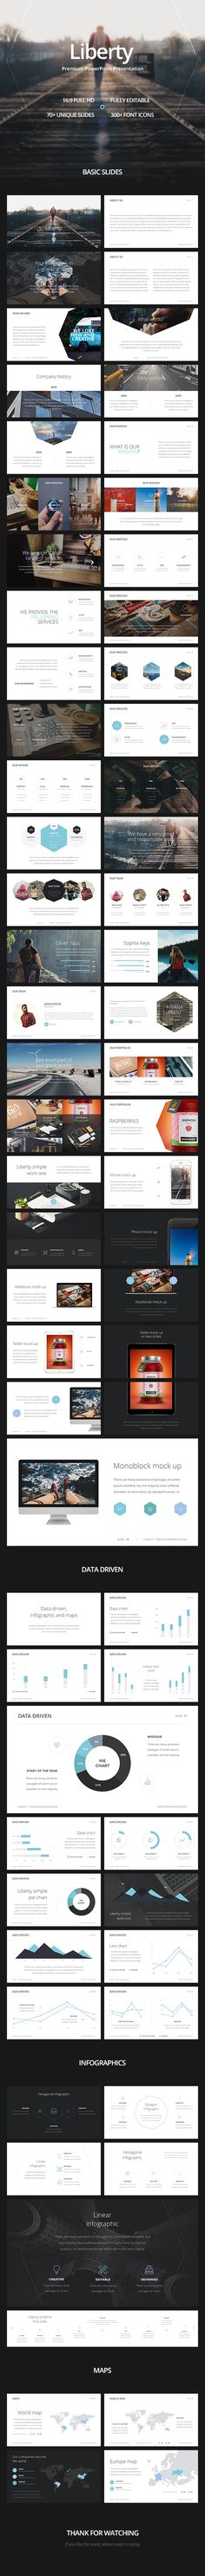 Liberty PowerPoint Presentation (PowerPoint Templates)